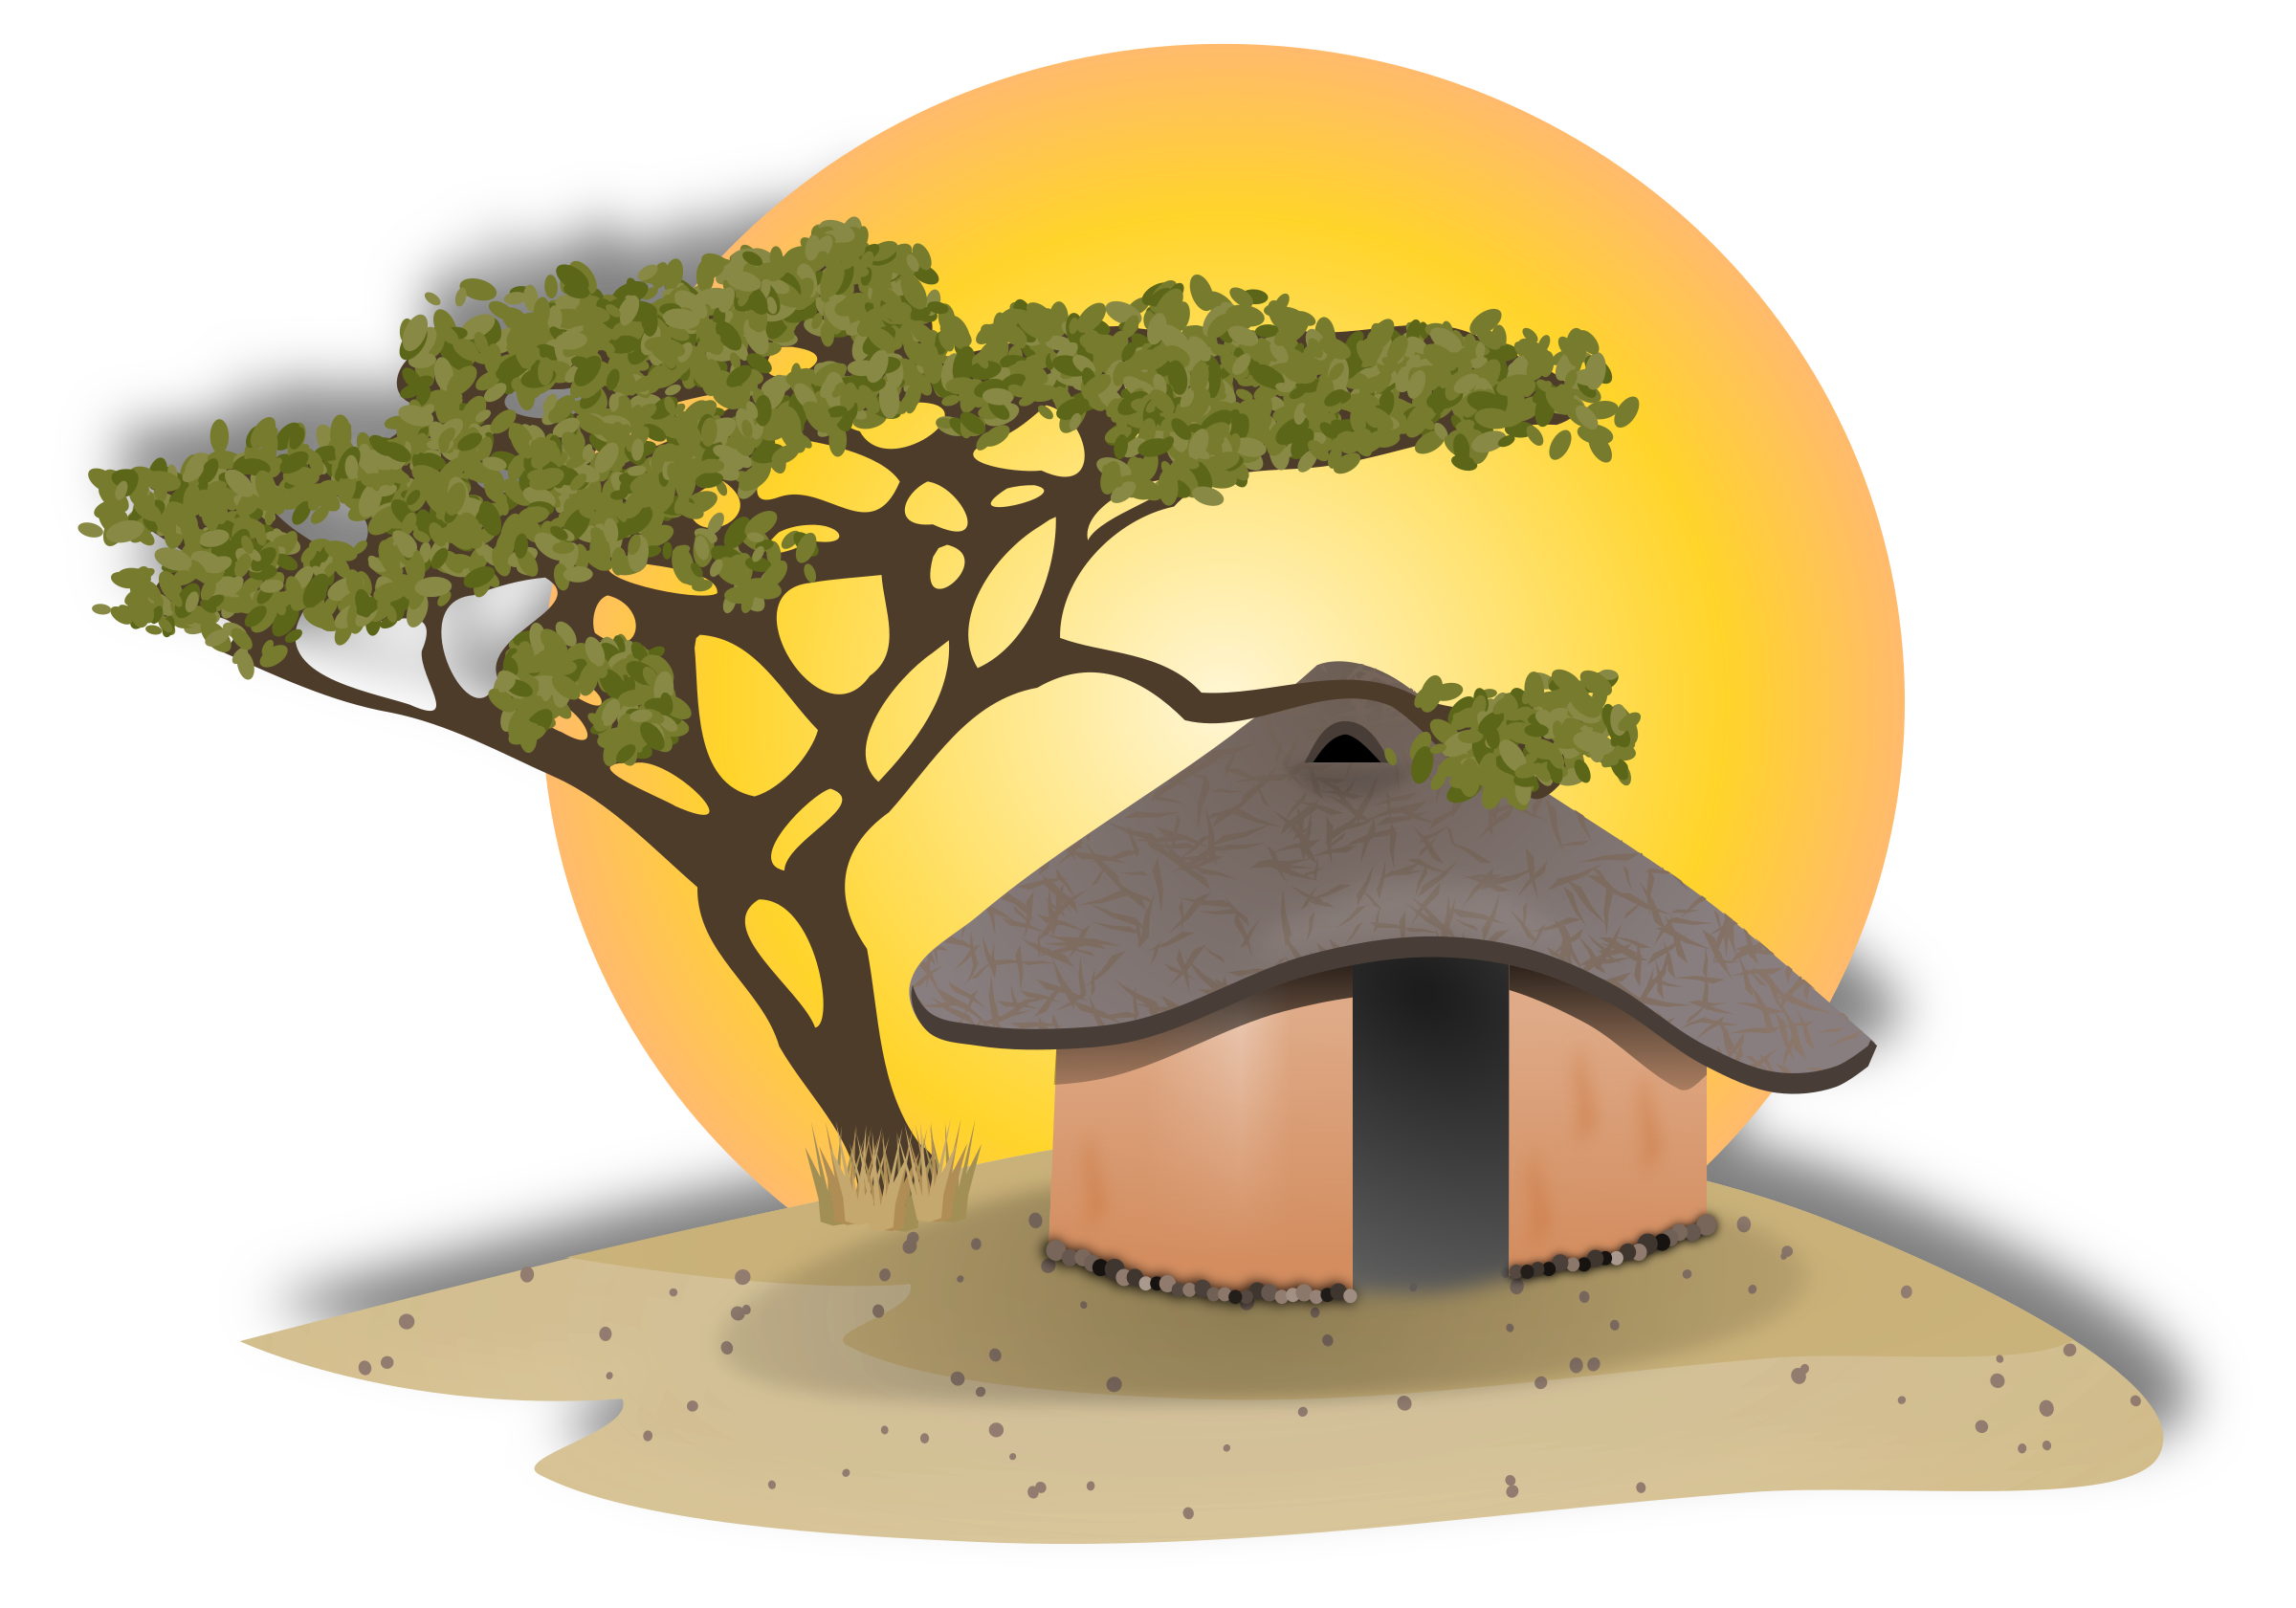 African hut drawing at. Cottage clipart straw roof graphic black and white download